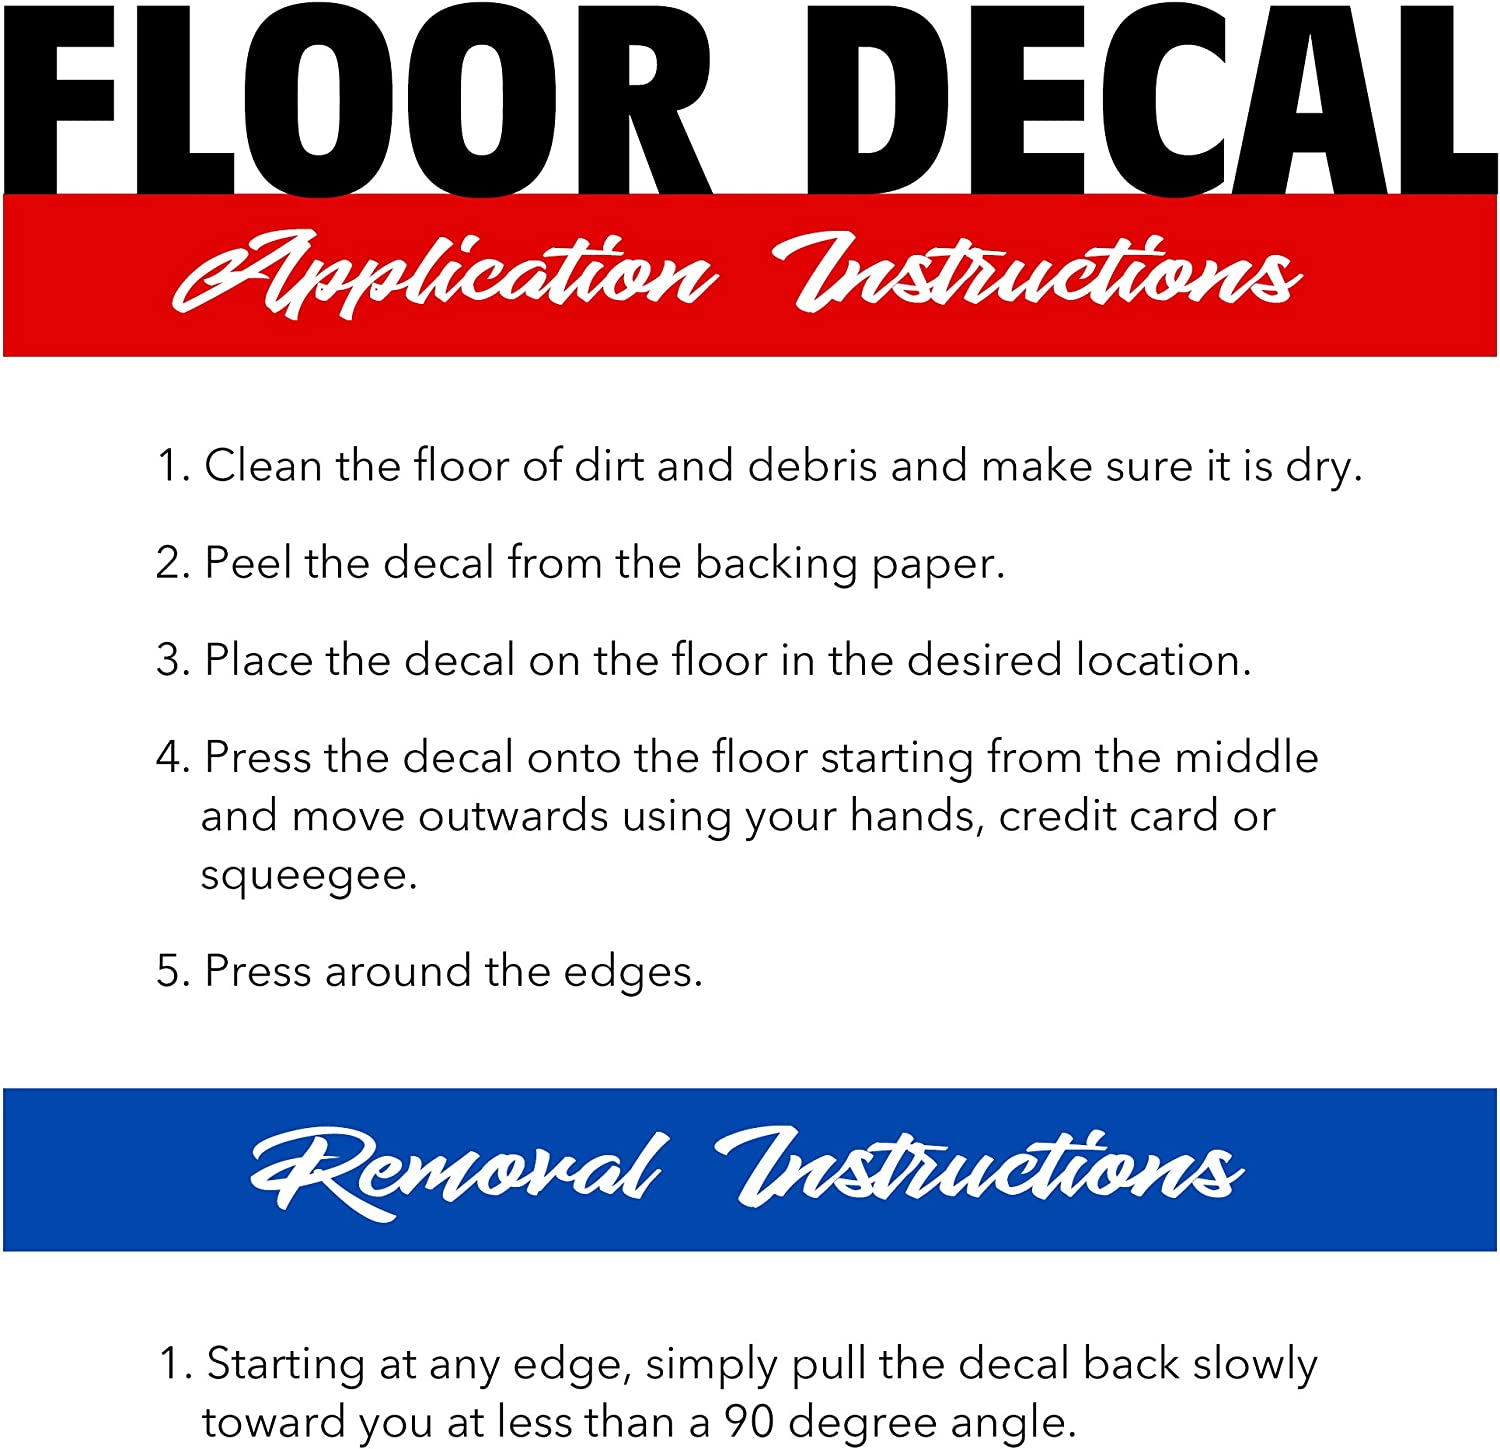 Blue and White Warning Alert Signs 6 Pack Commercial Use Please Wait Here Floor Sticker Social Distancing Water-Resistant Vinyl Decal for Store Business Indoor